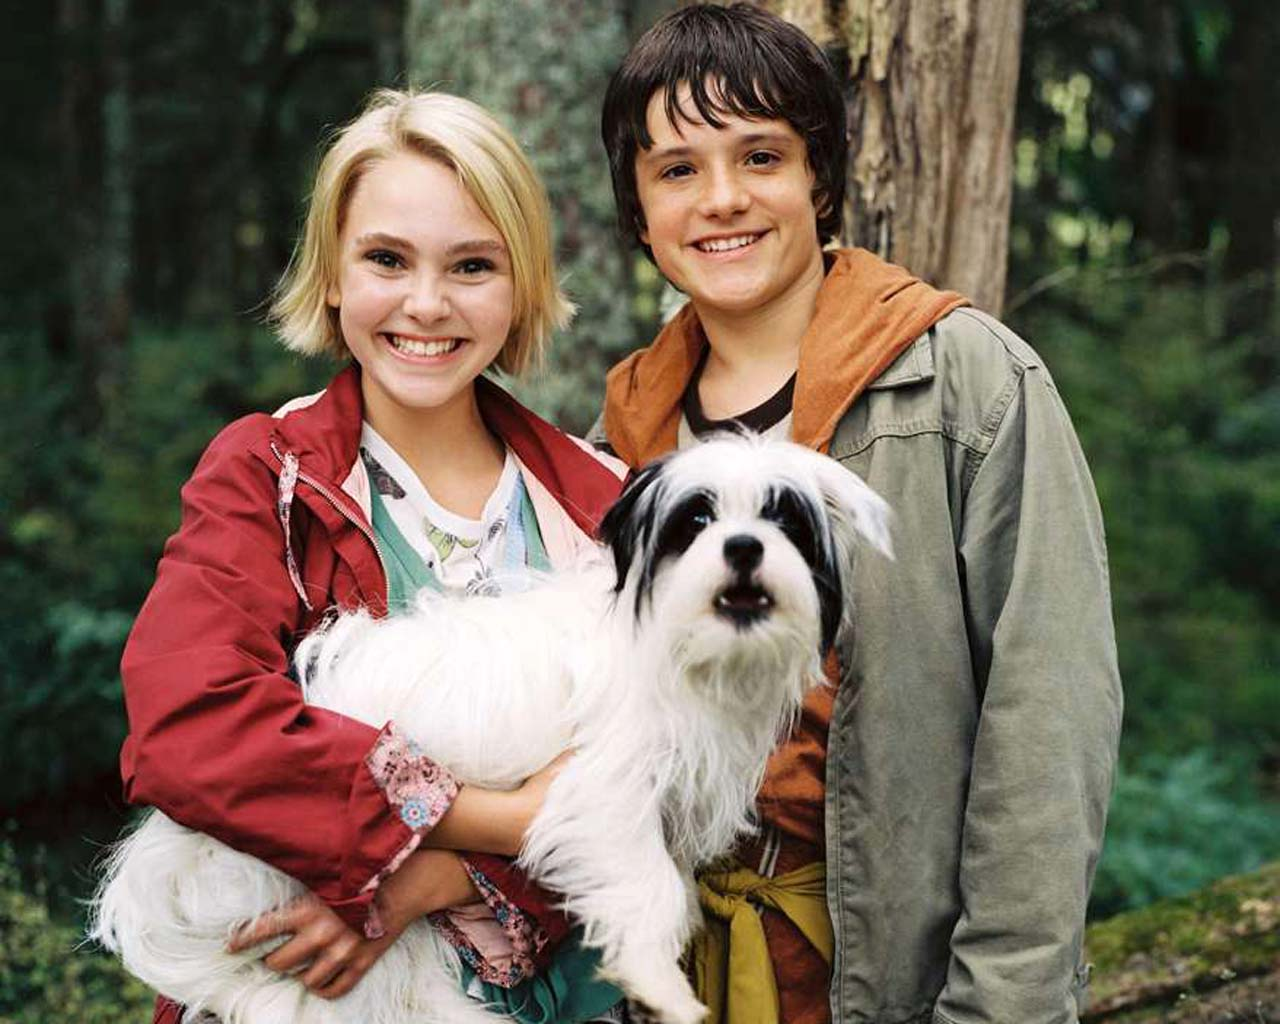 UN PUENTE HACIA TERABITHIA MOVIE WALLPAPERS